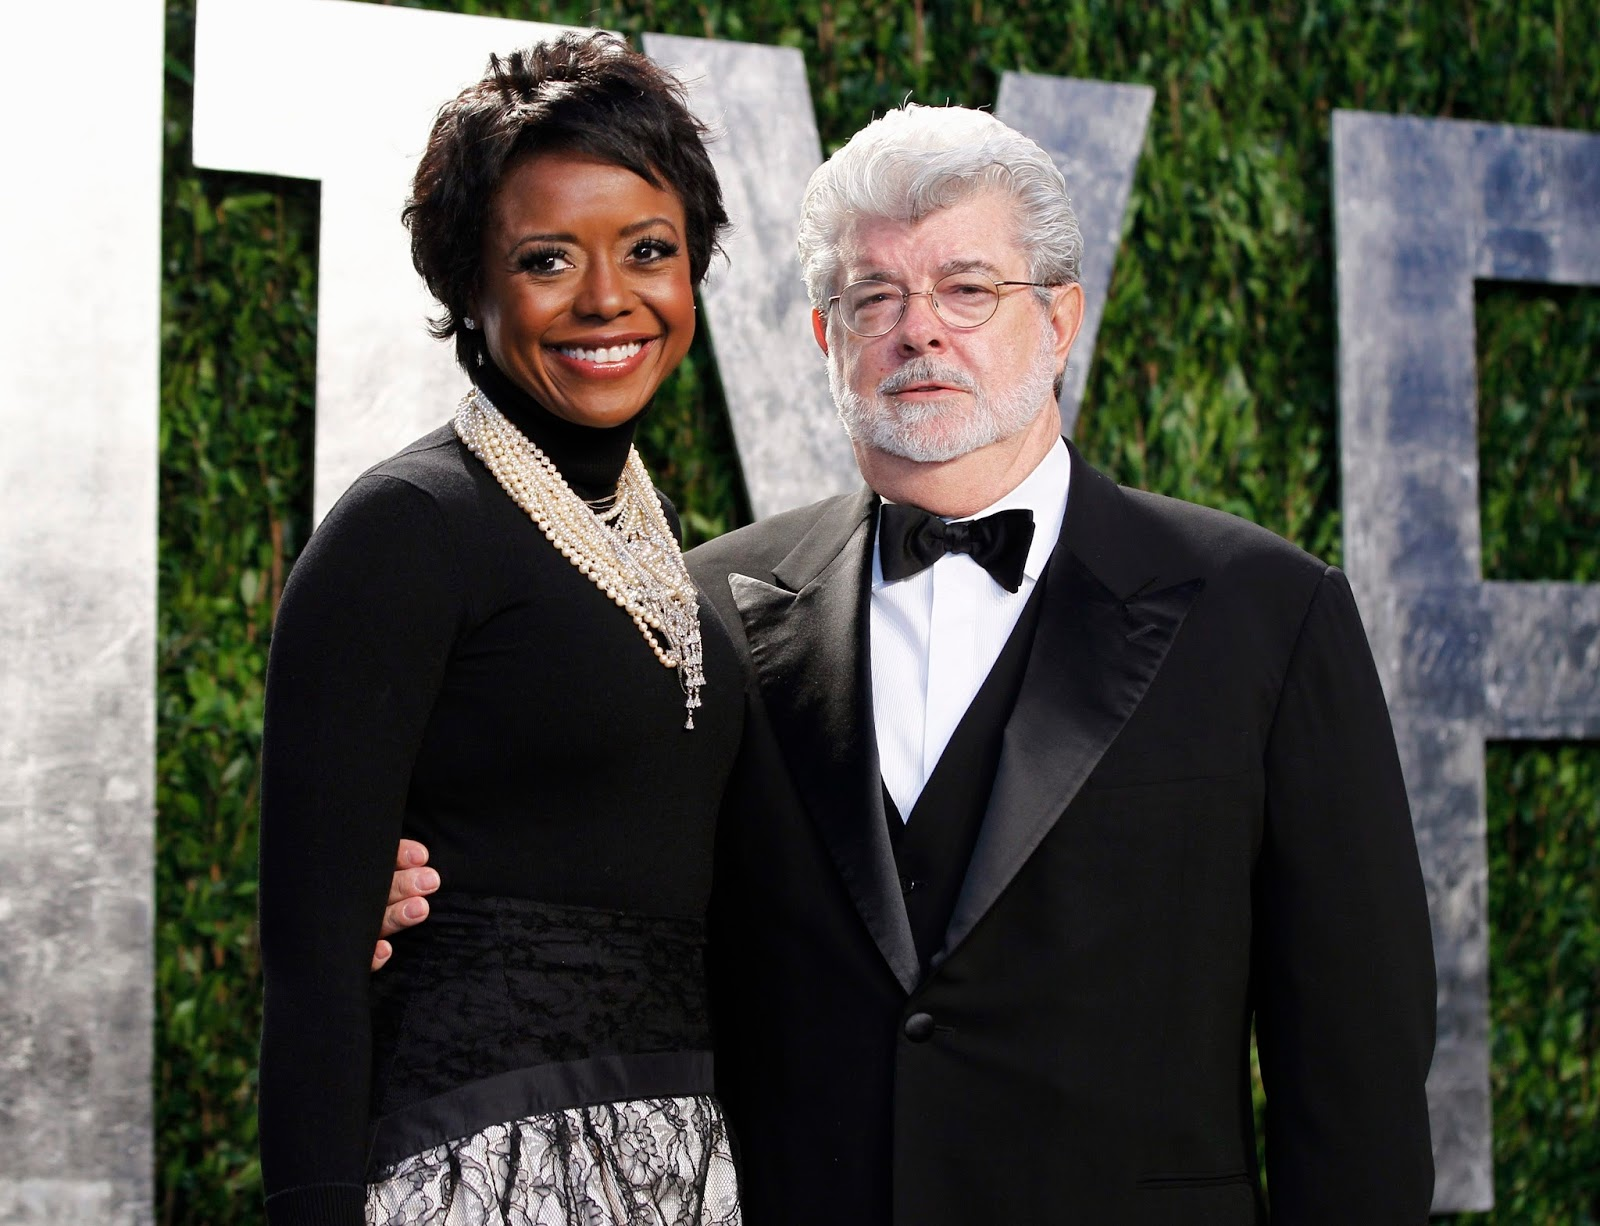 director george lucas and his partner mellody hobson arrive at the 2012 vanity fair oscar party in west hollywood california in this february 26 2012 file photo lucas has become engaged to his lon